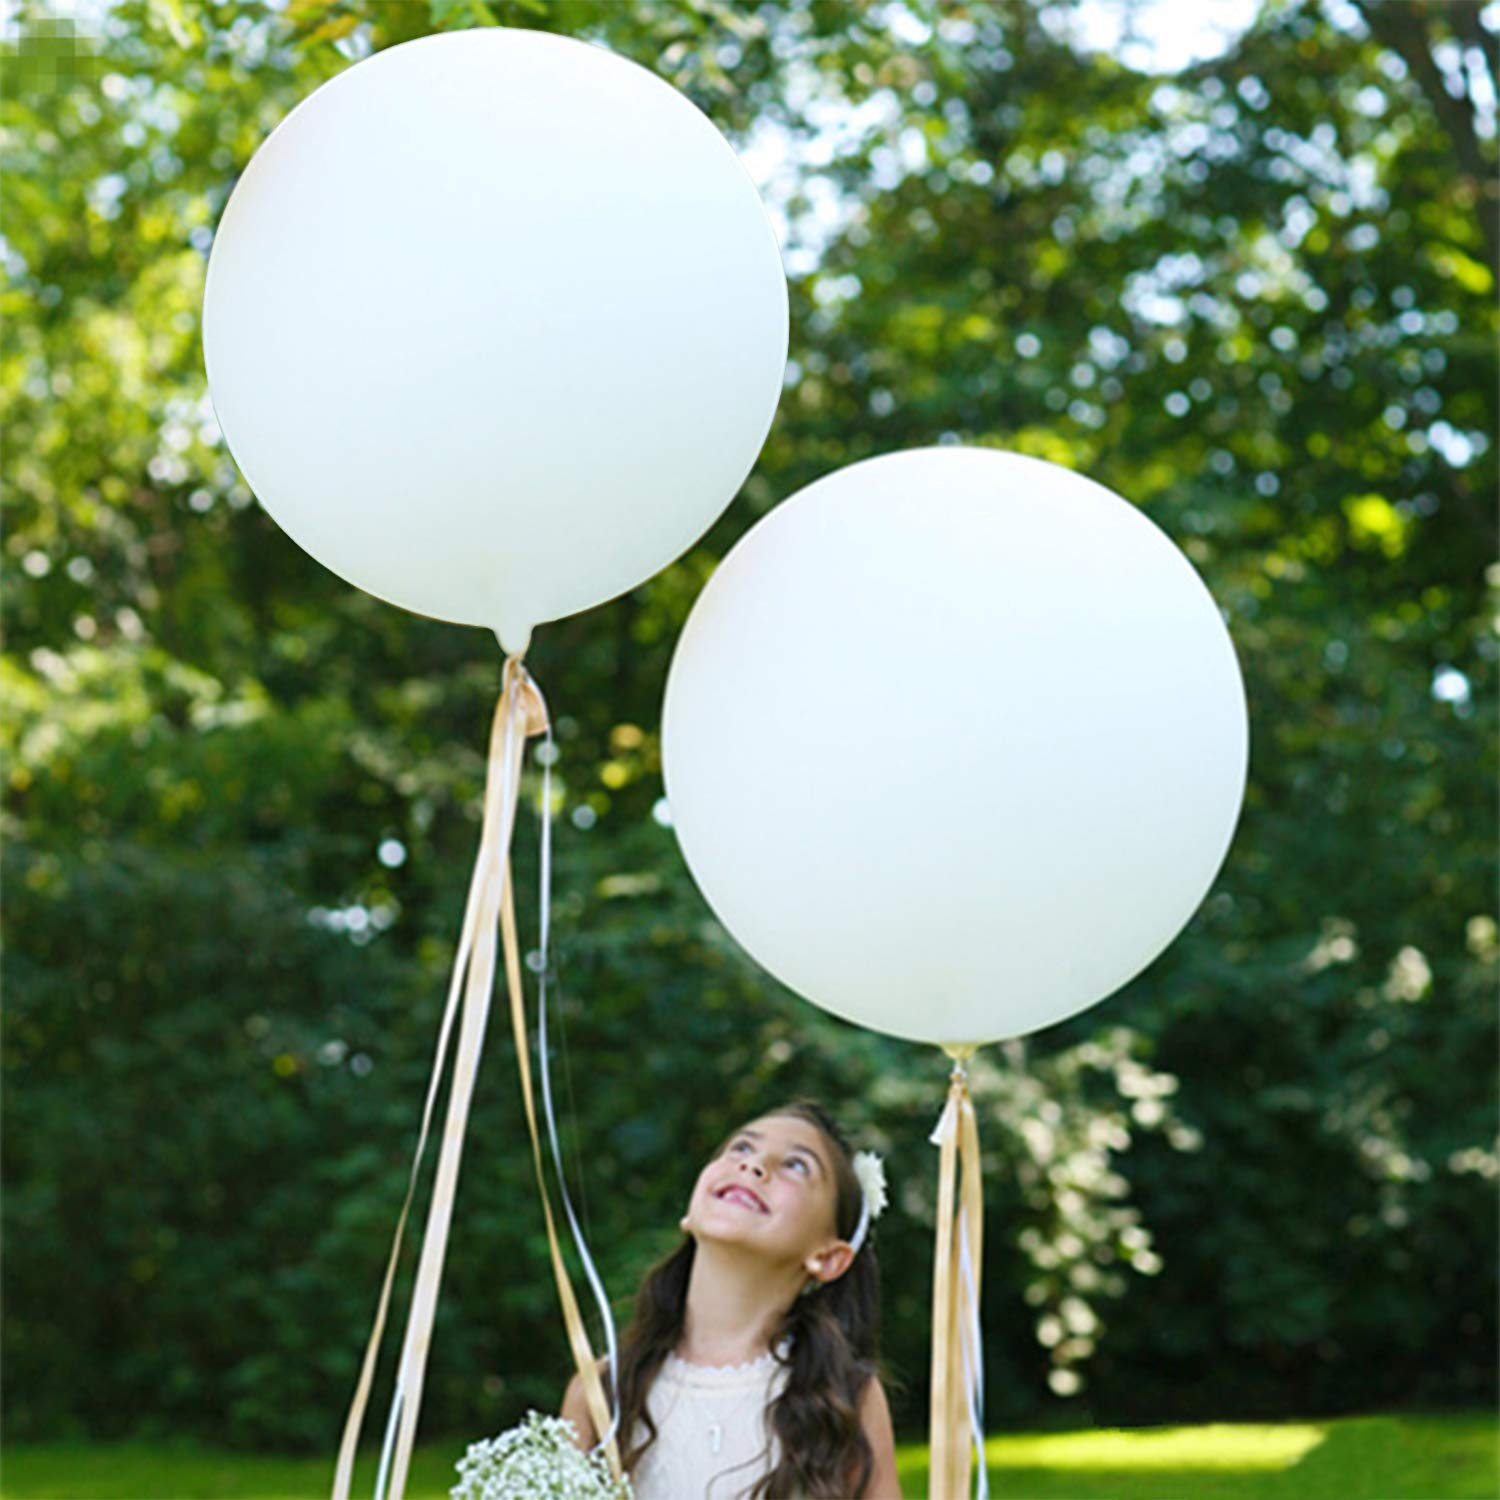 5PCS Large White Balloons Giant 36 Inch White Balloons - Decorations for Birthday Wedding Party Baby Shower Carnival Venlentine's Day Decorations